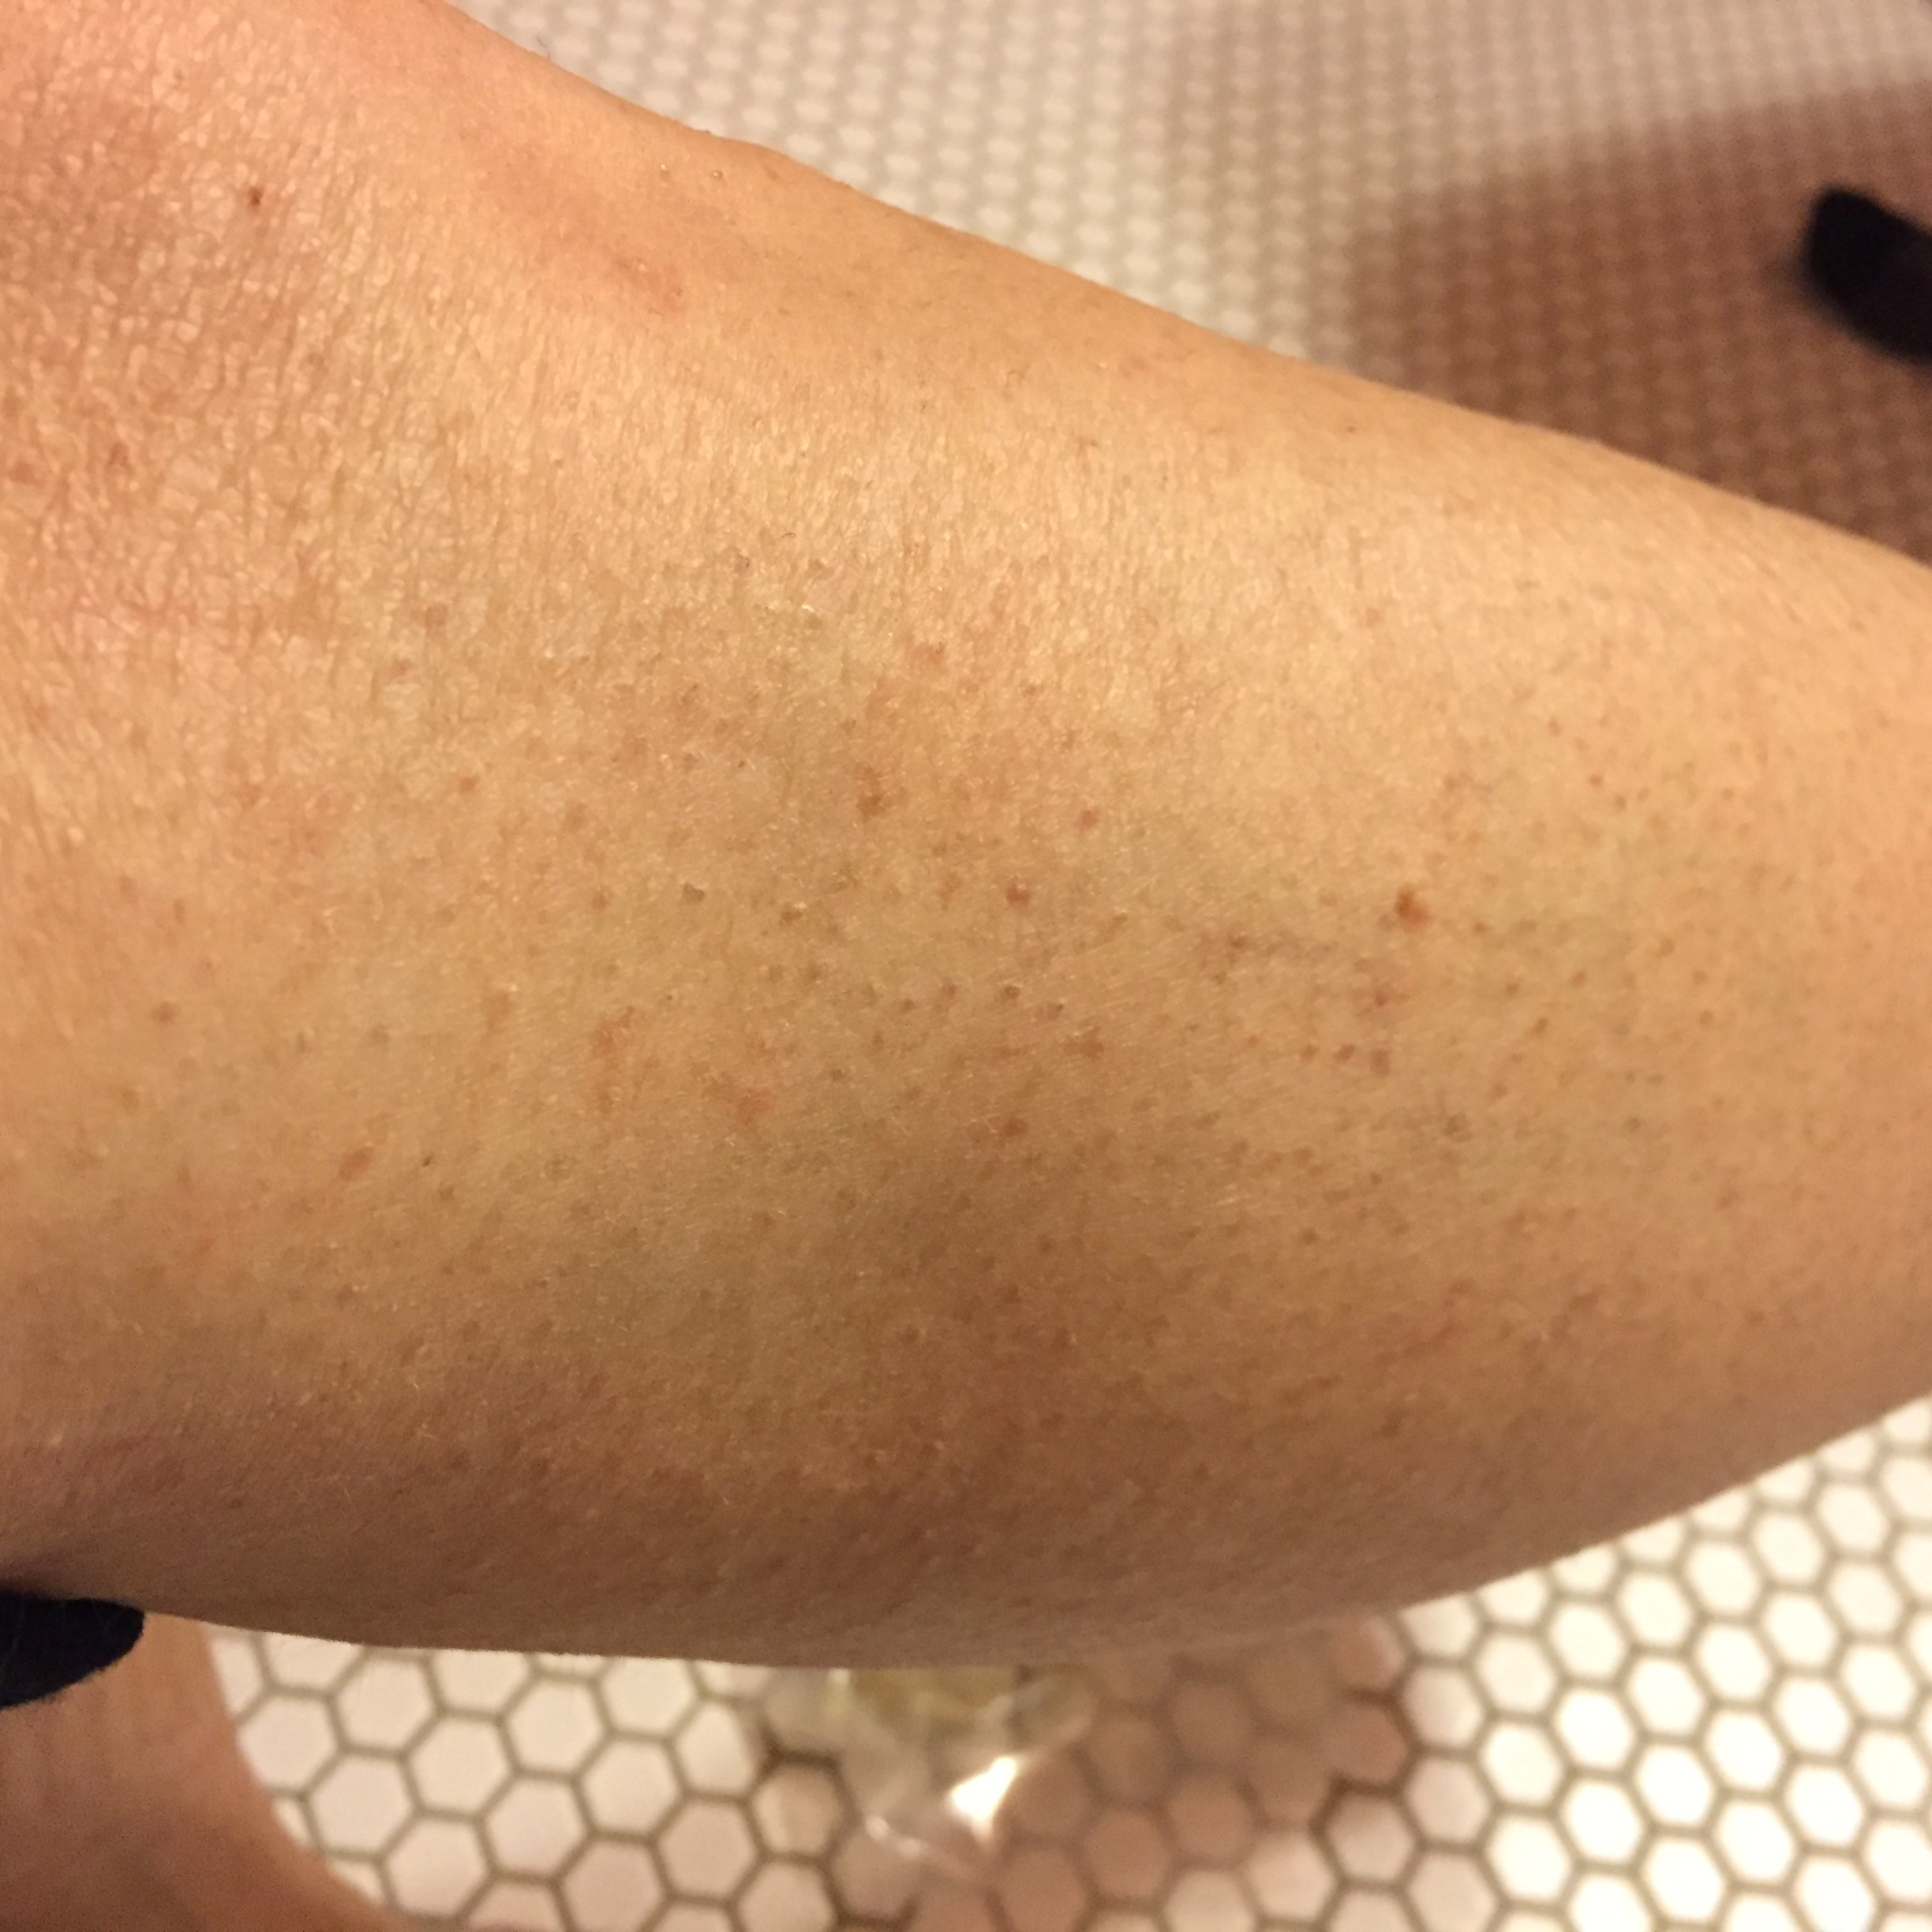 My old, dry leg before using any product.